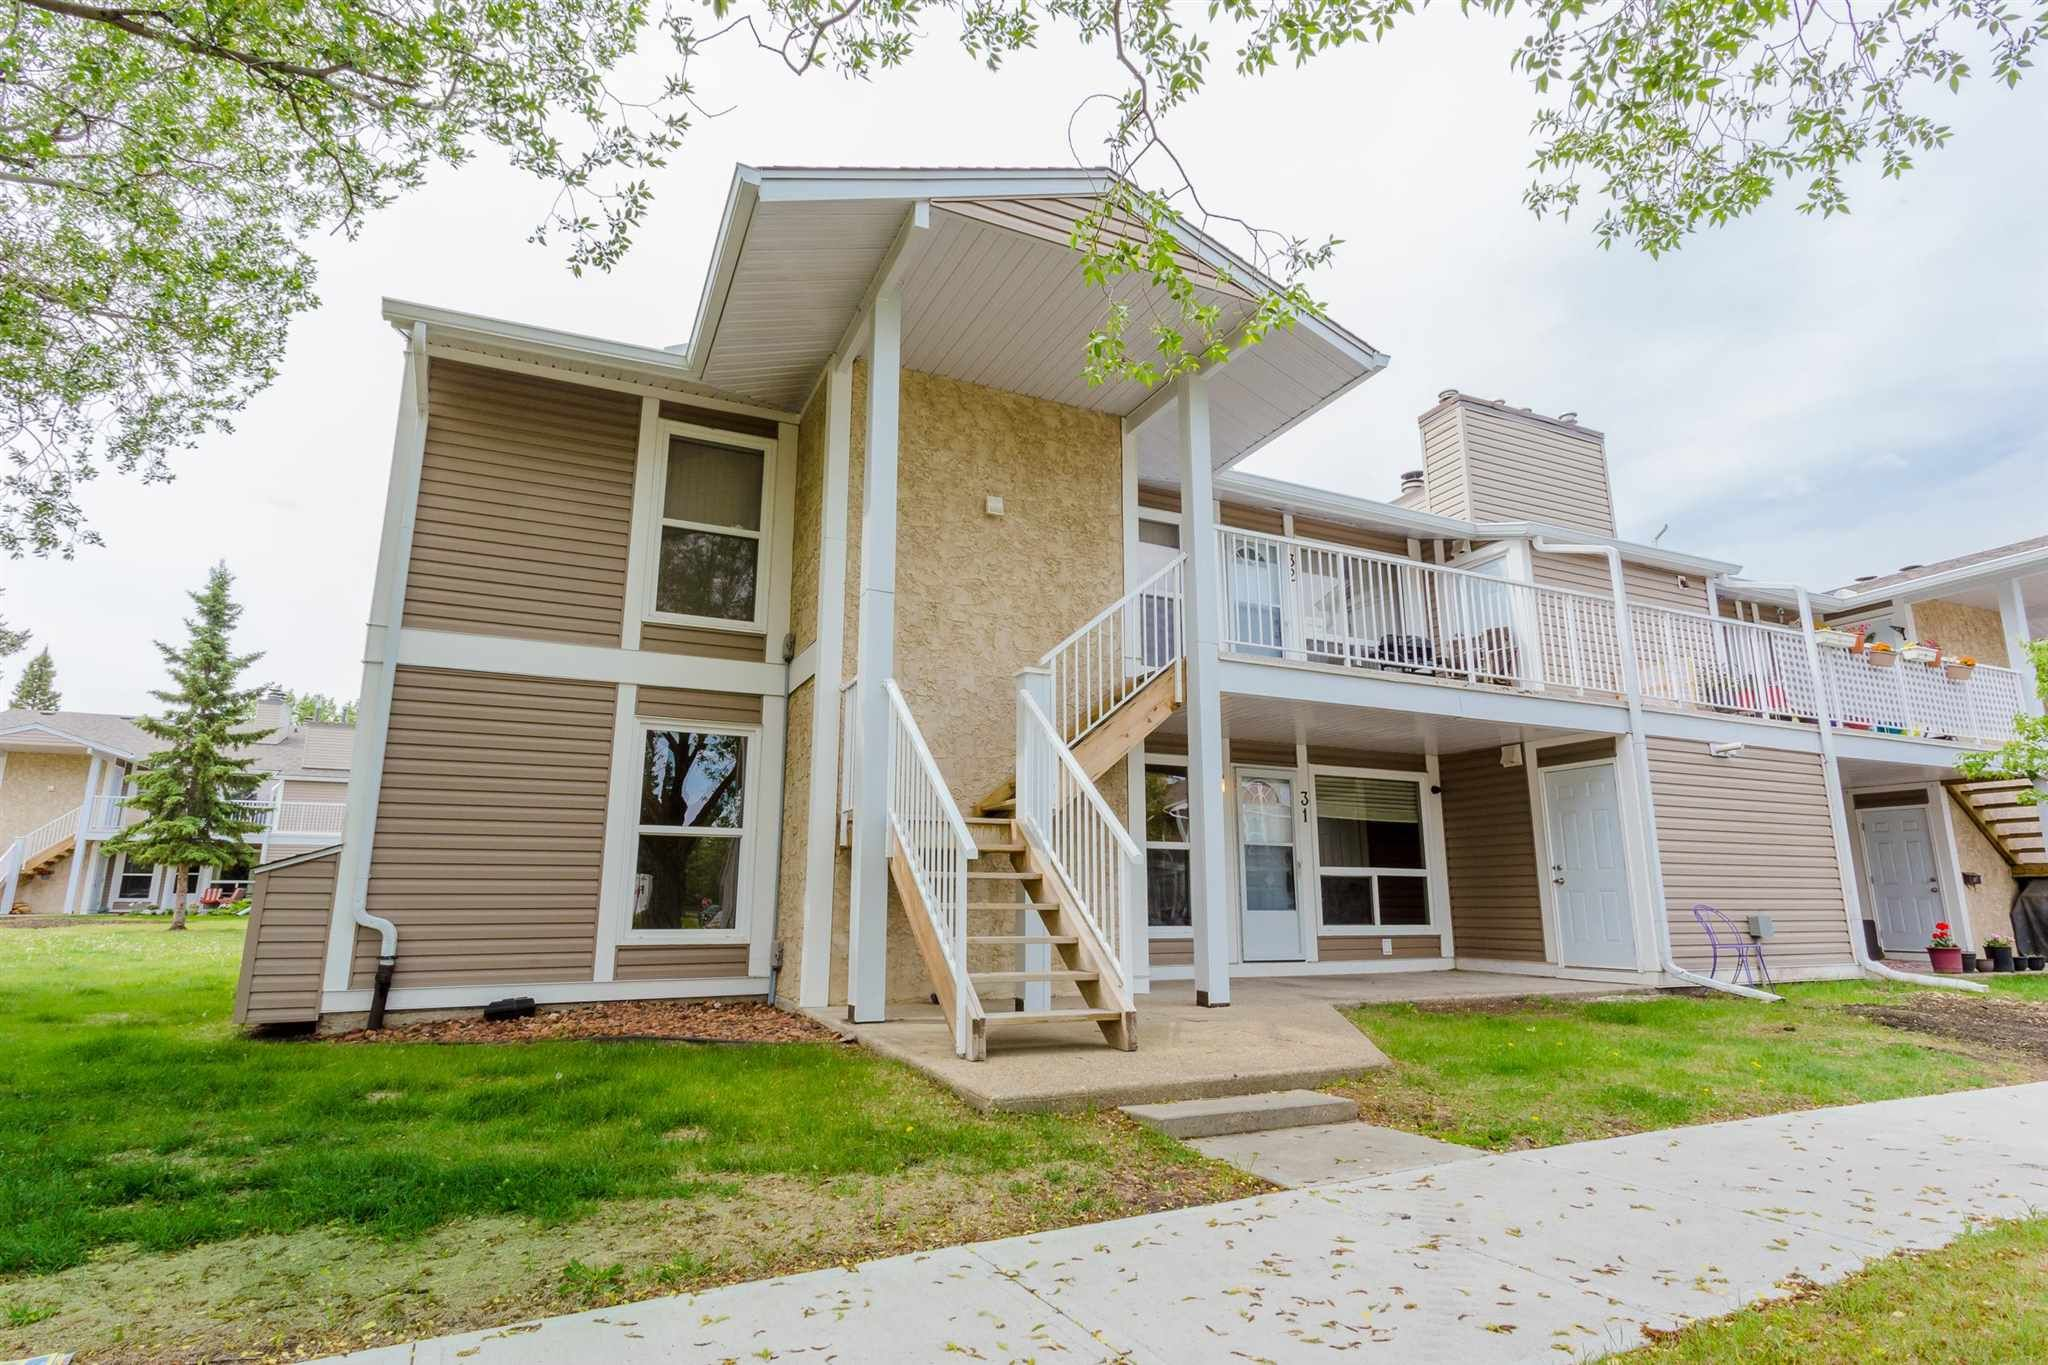 Main Photo: 31 2204 118 Street NW in Edmonton: Zone 16 Carriage for sale : MLS®# E4249147